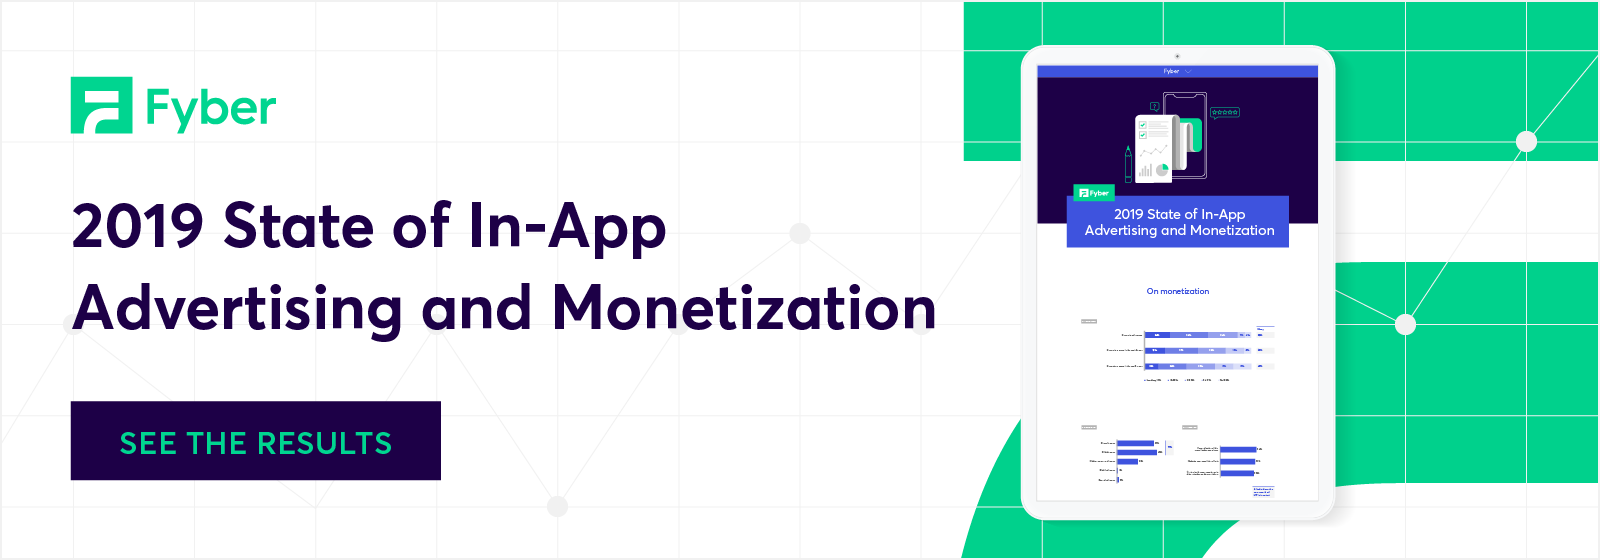 Fyber 2019 State of In-App Advertising and Monetization promo blog post v4